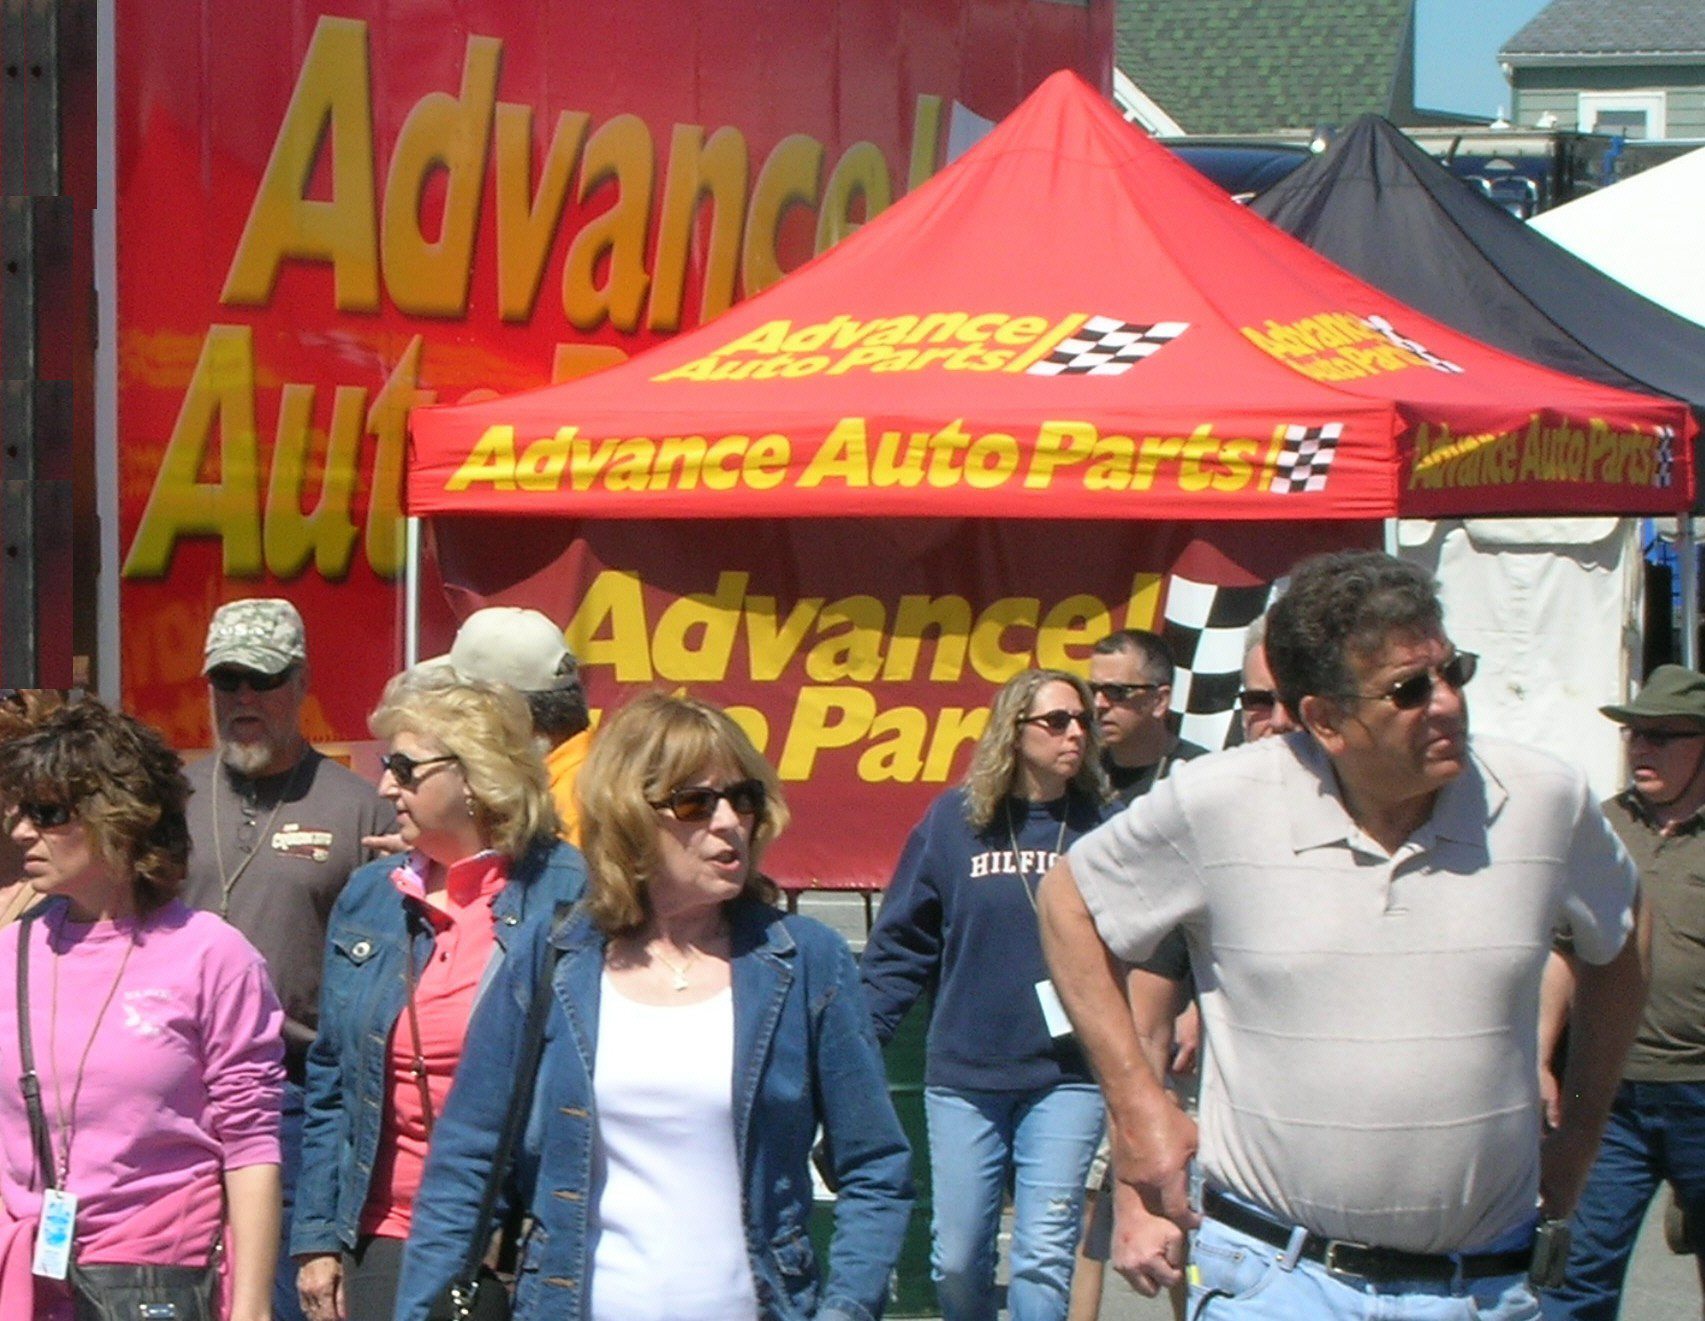 Cruisin' Ocean City Sponsors - Advance Auto Parts